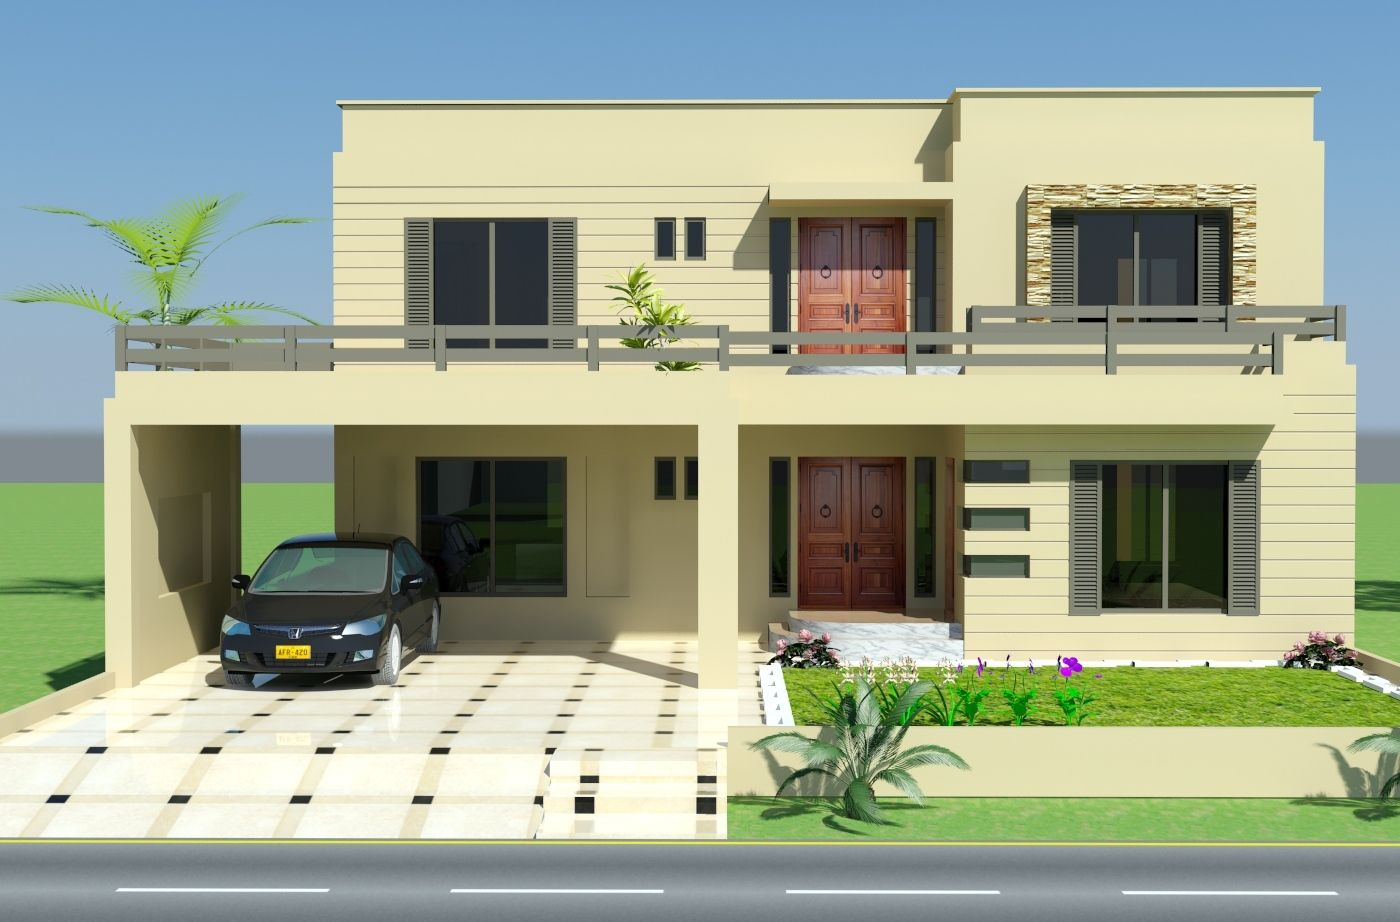 Exterior house design front elevation mi futura casa for Front exterior home designs